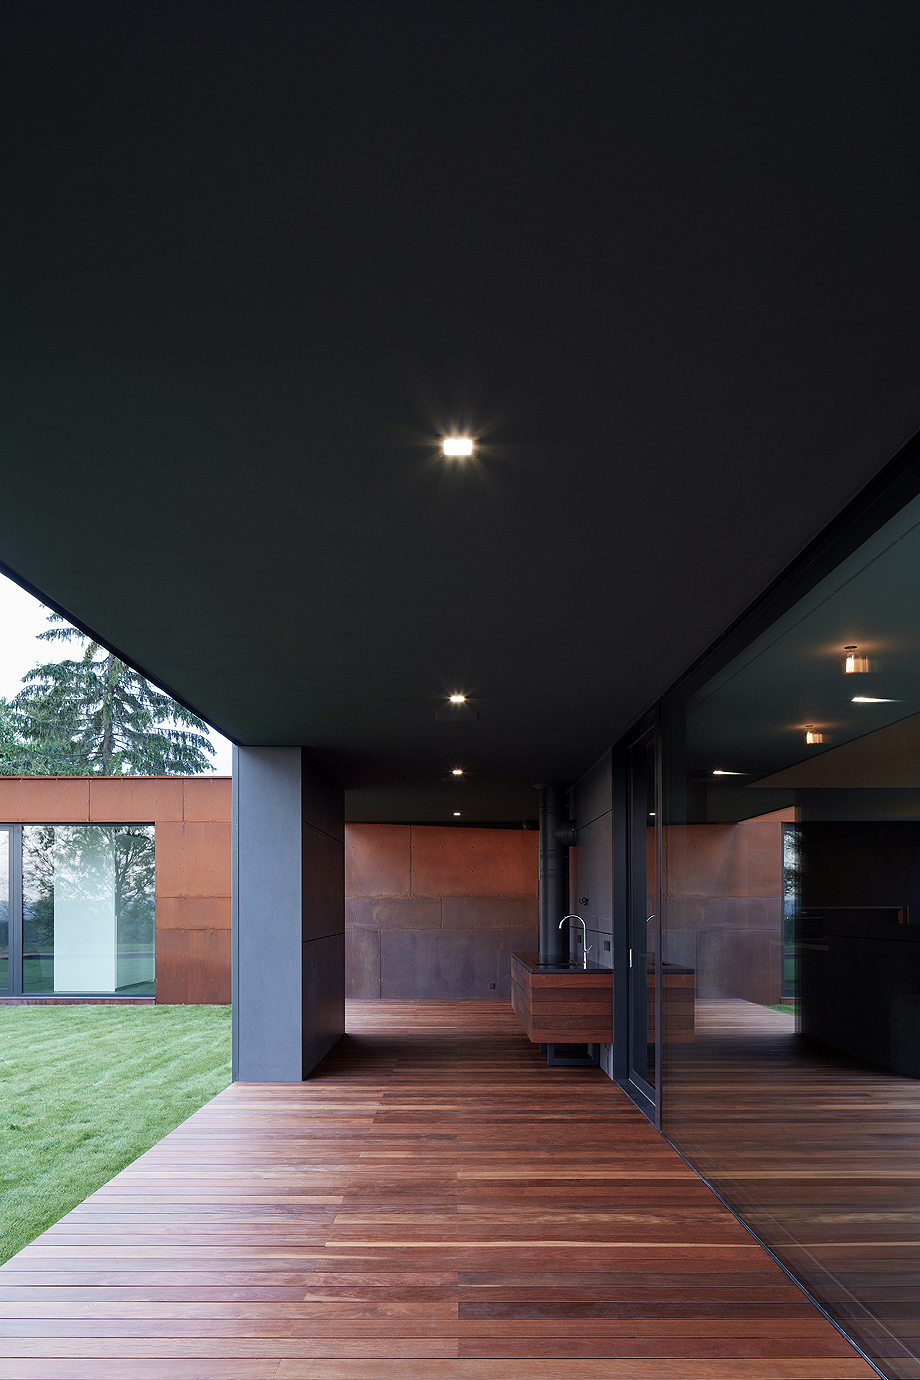 engel house de cmc architects (10)